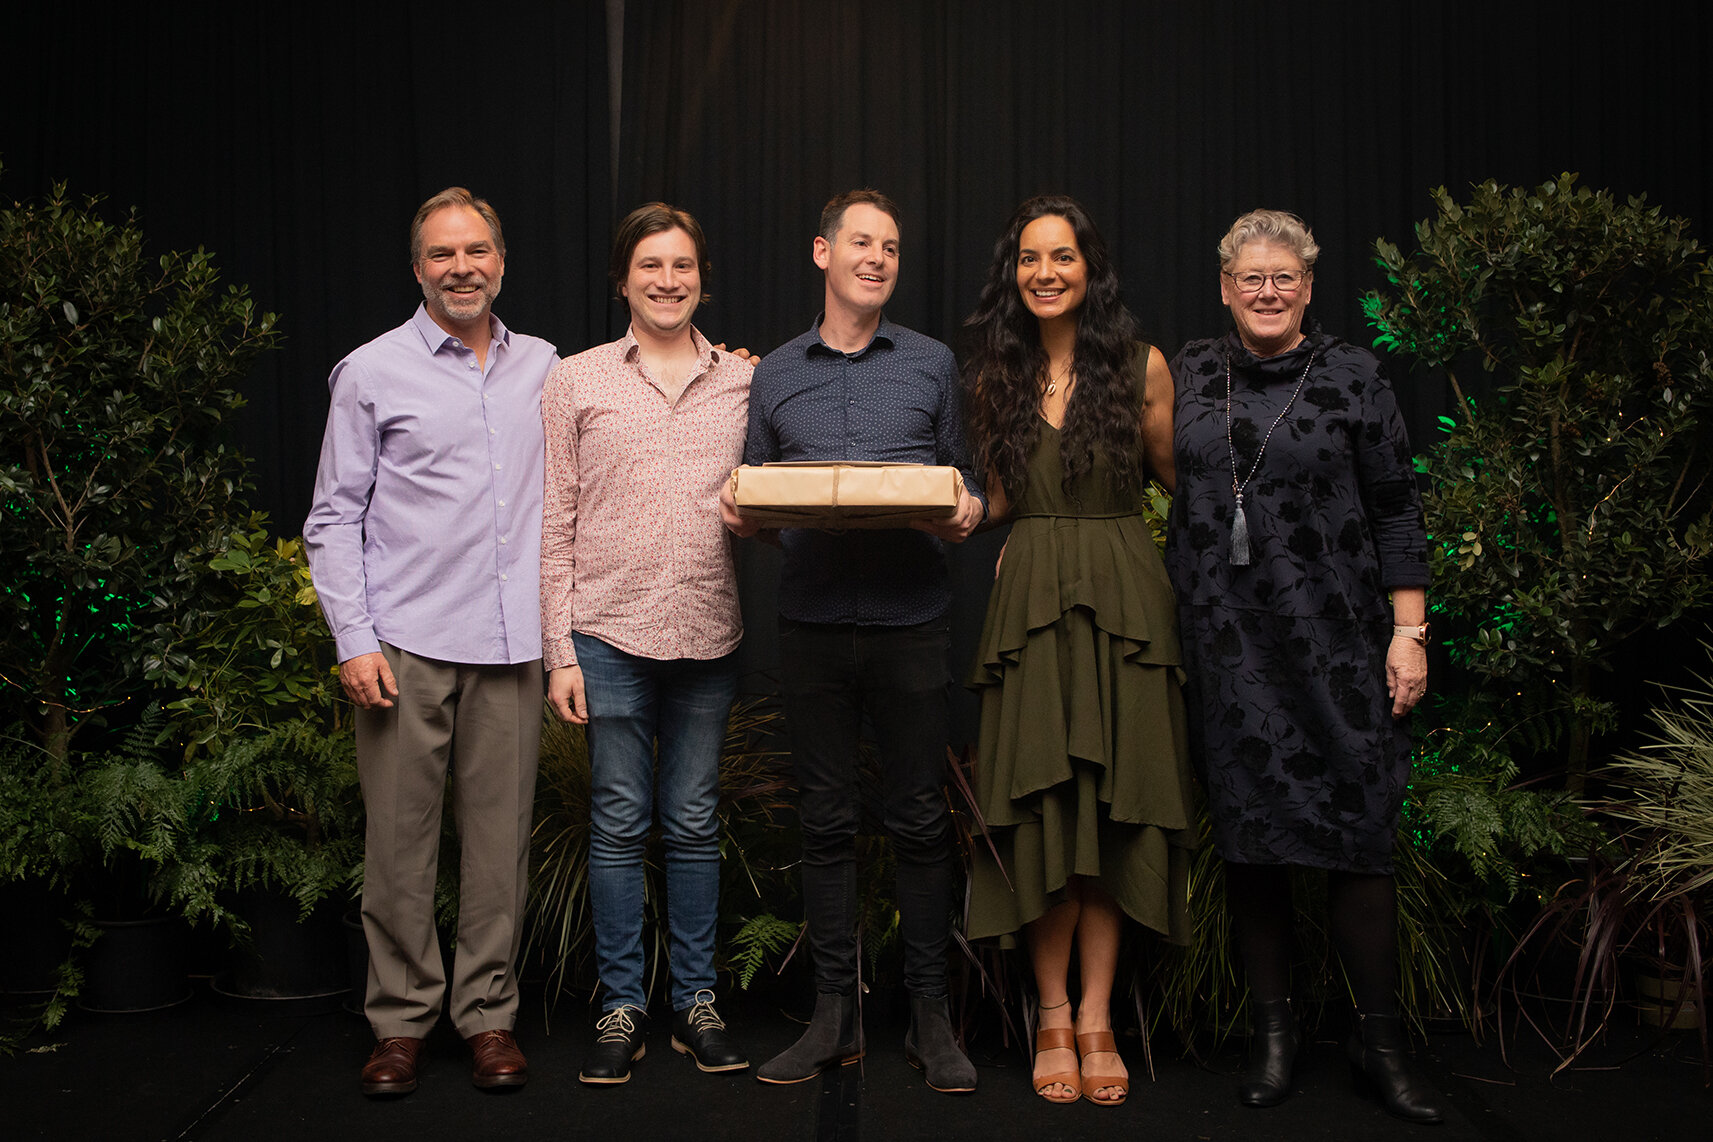 Shannon and Sanson Carts for Best Marketing Initiative (2nd Place 2019) - From left to right: Director Jol Glover, Hamish Terry & Michael Tuttiett, Marketing Contractor Stace Cottrill and Director Donna Ferrall.